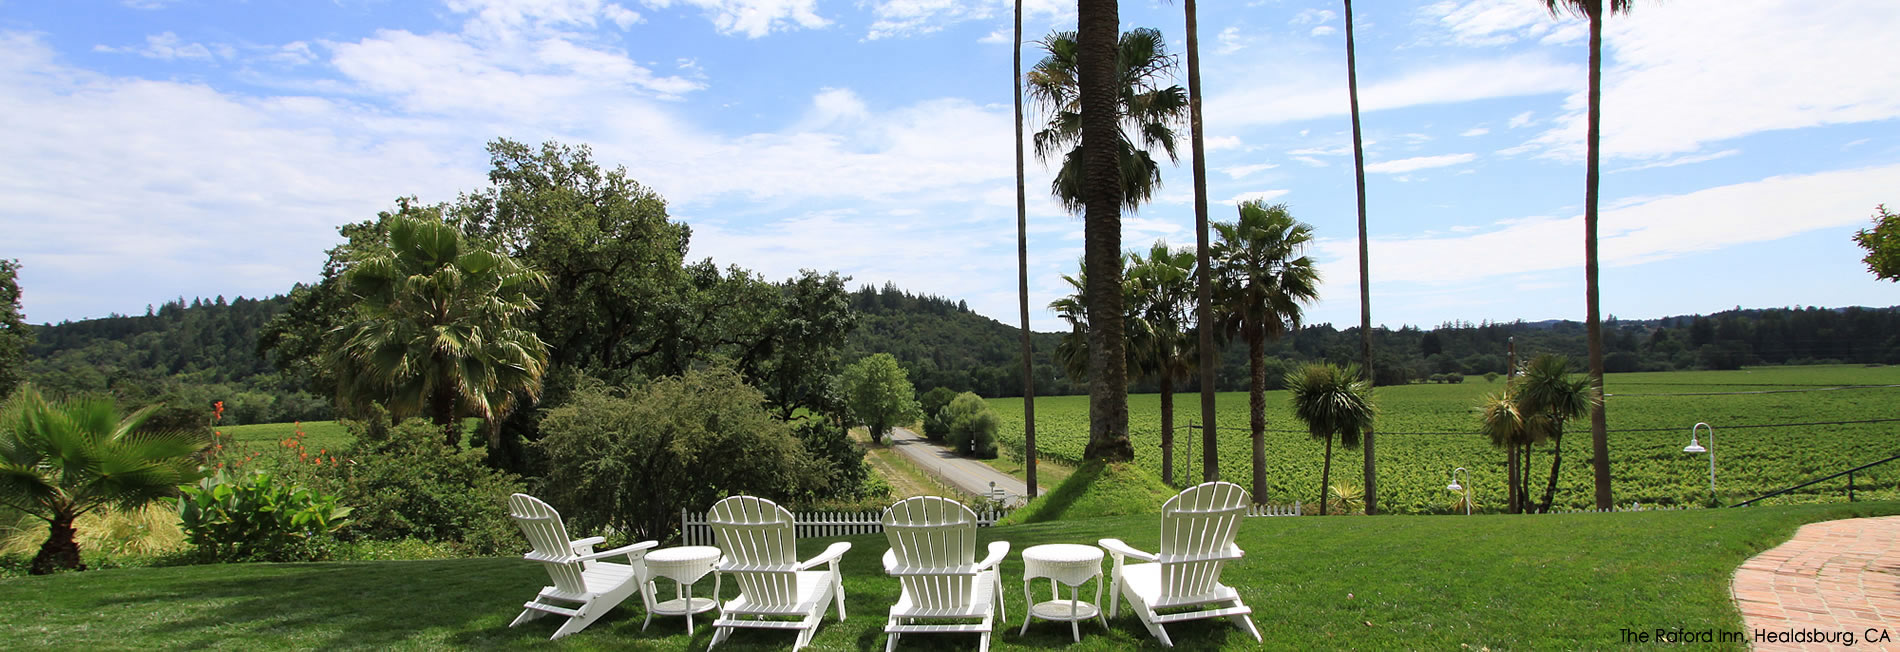 sonoma wine country bed and breakfast inn